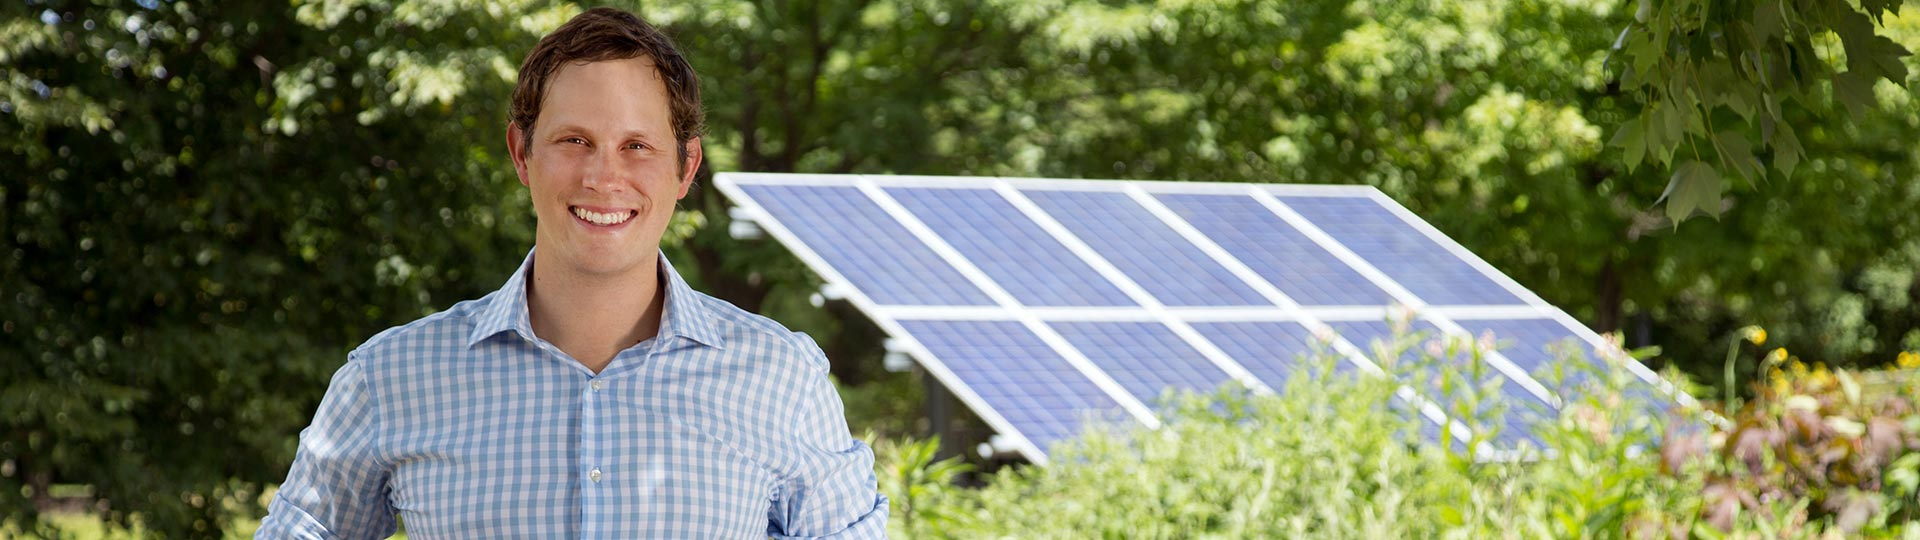 Casey Weinstein - Renewable Energy Candidate